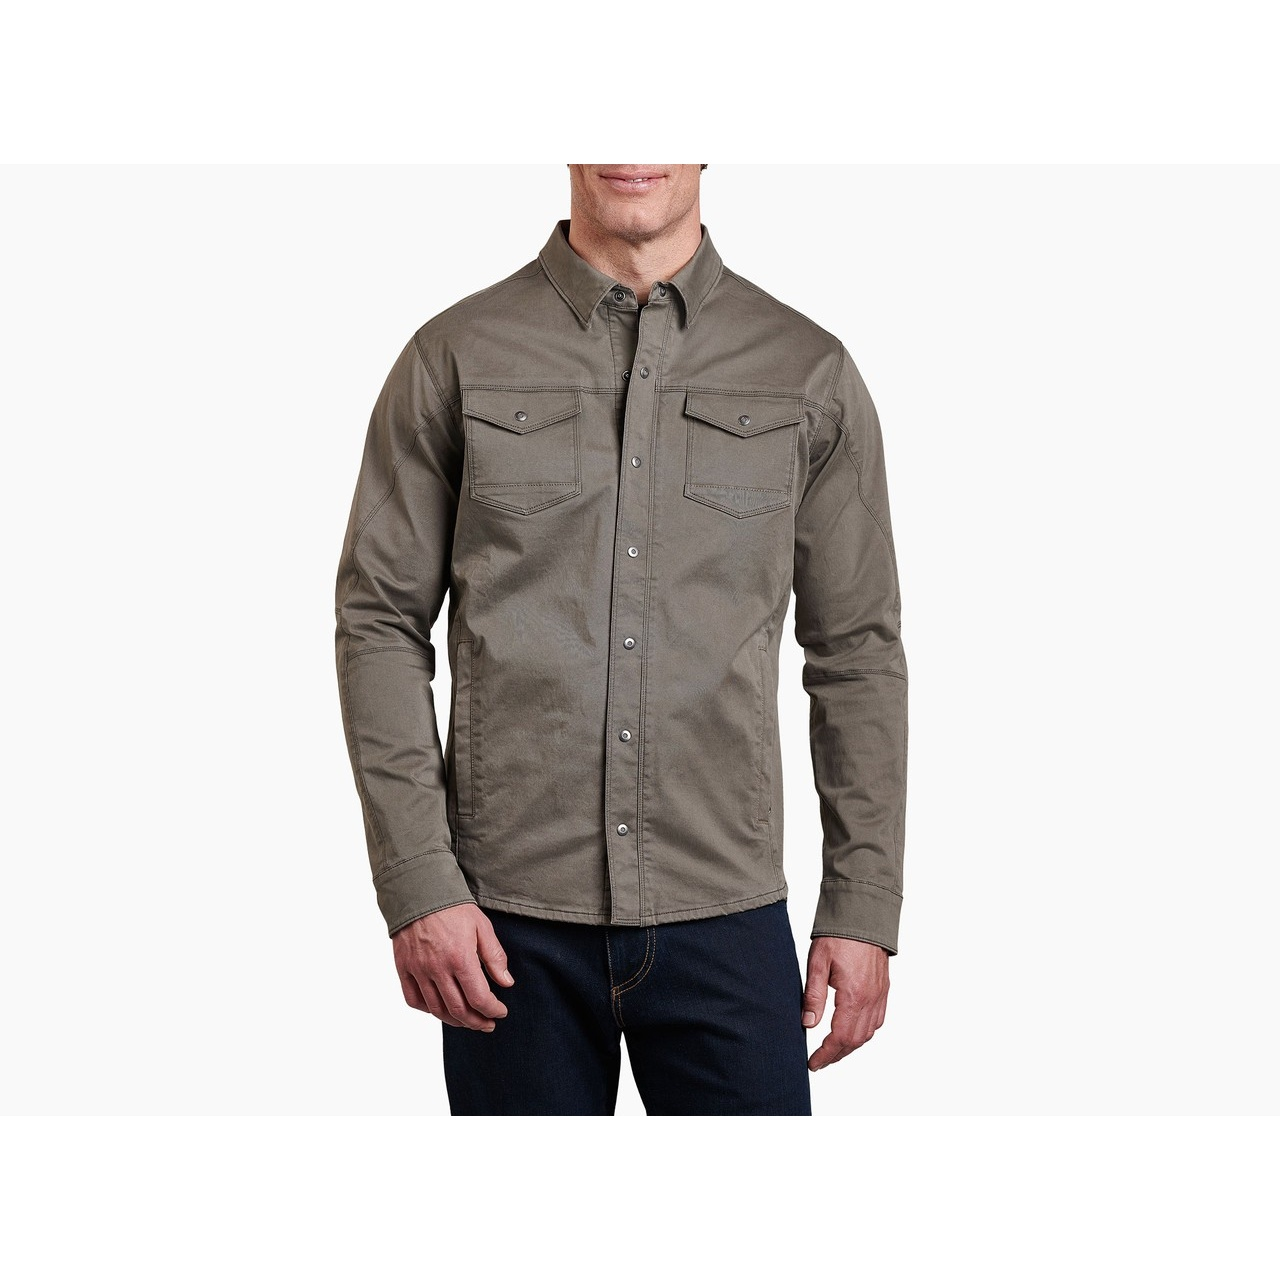 Generatr Jacket - Men's